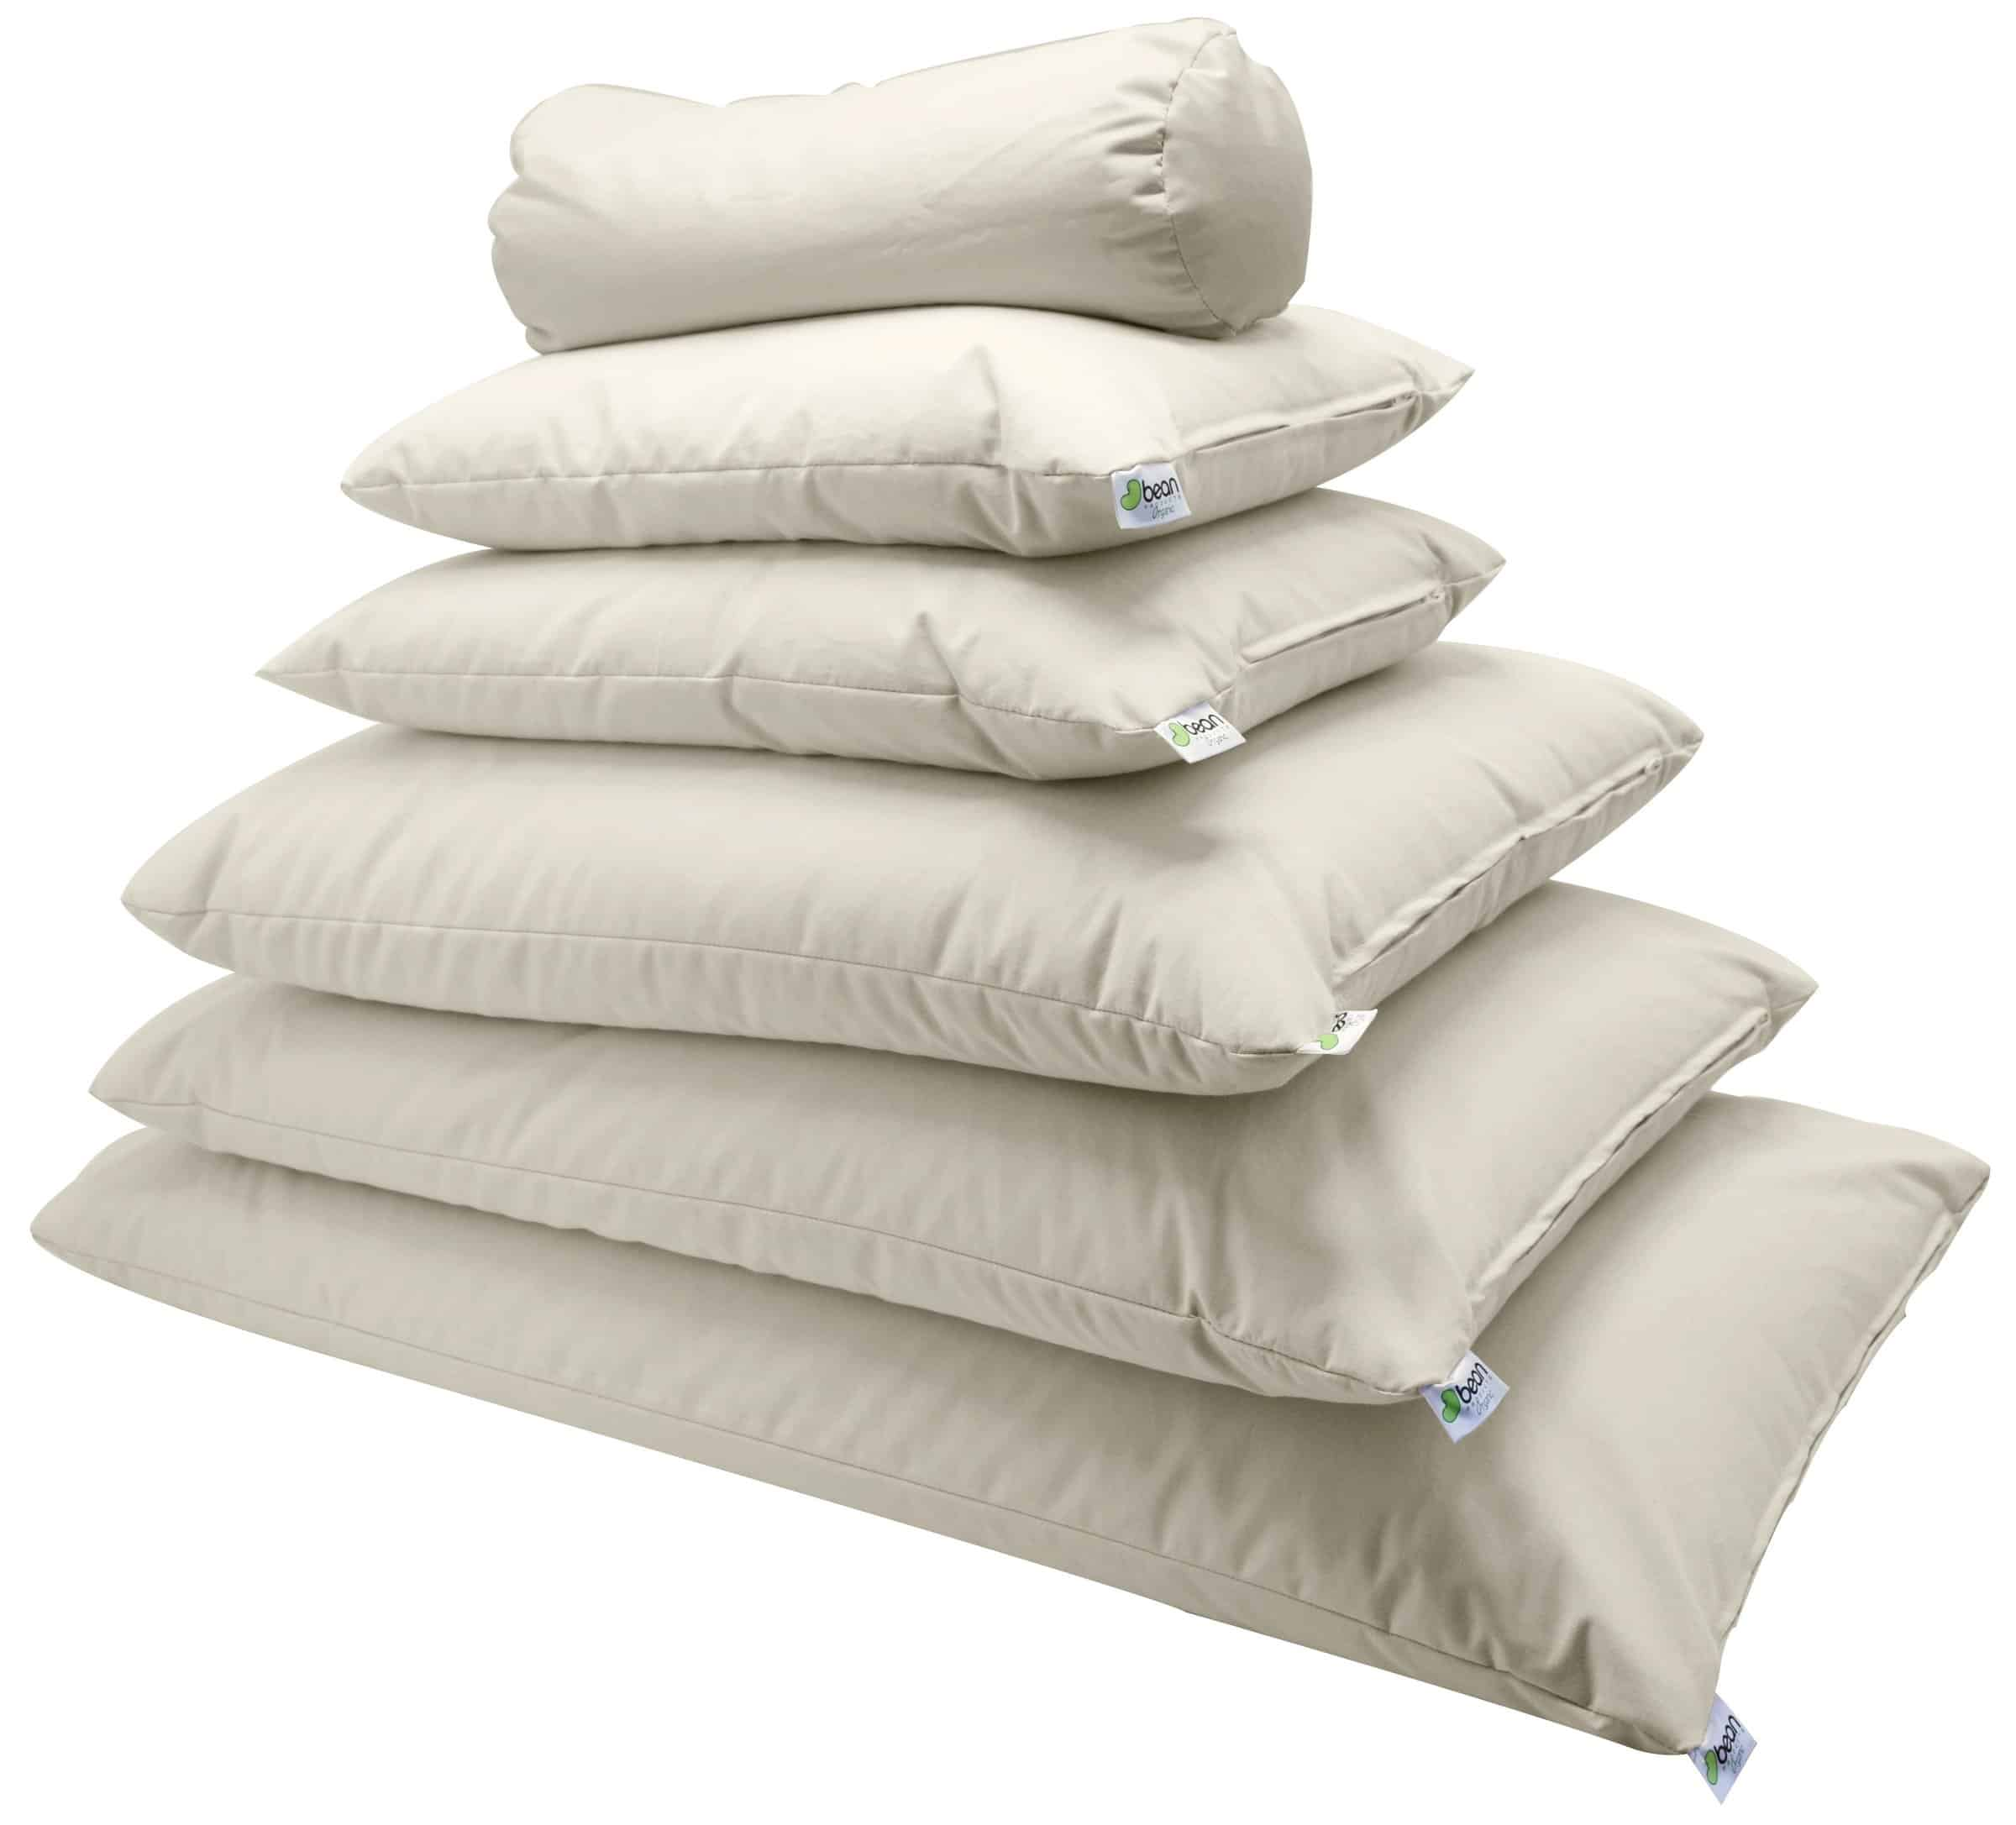 Bean Products Chemical-Free Toddler Pillows